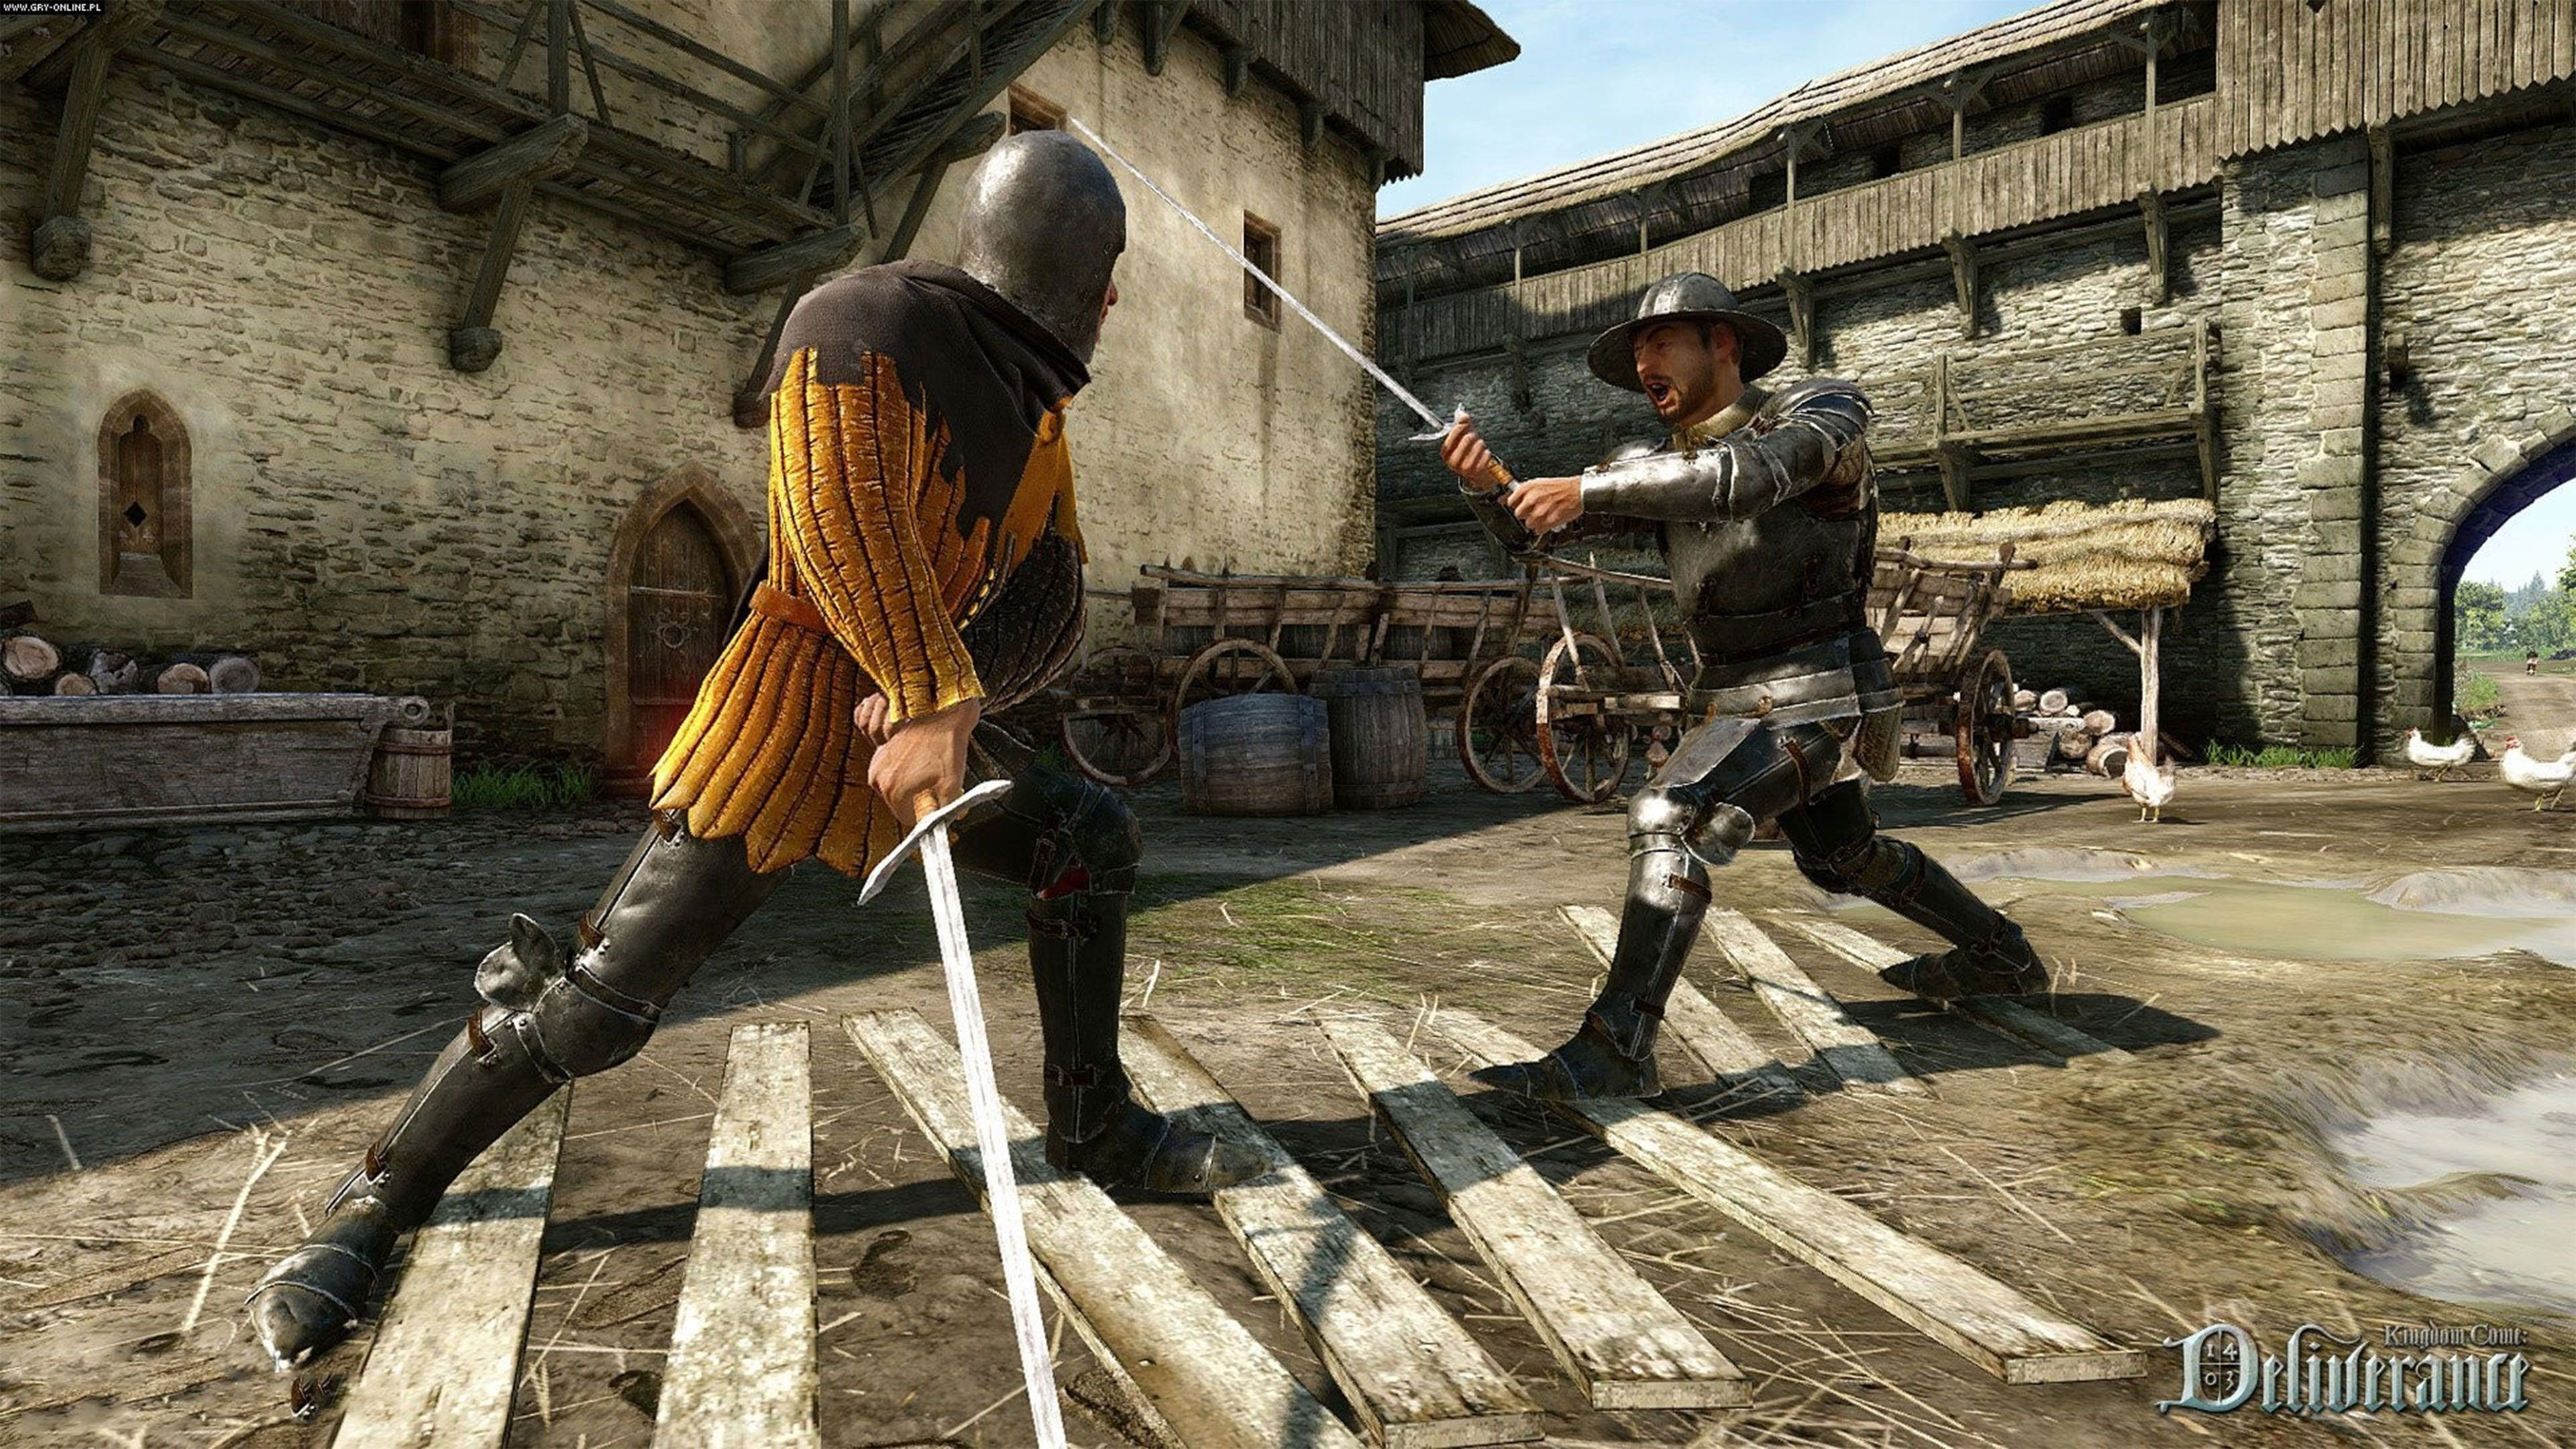 Kingdom Come: Deliverance Wallpapers in Ultra HD | 4K